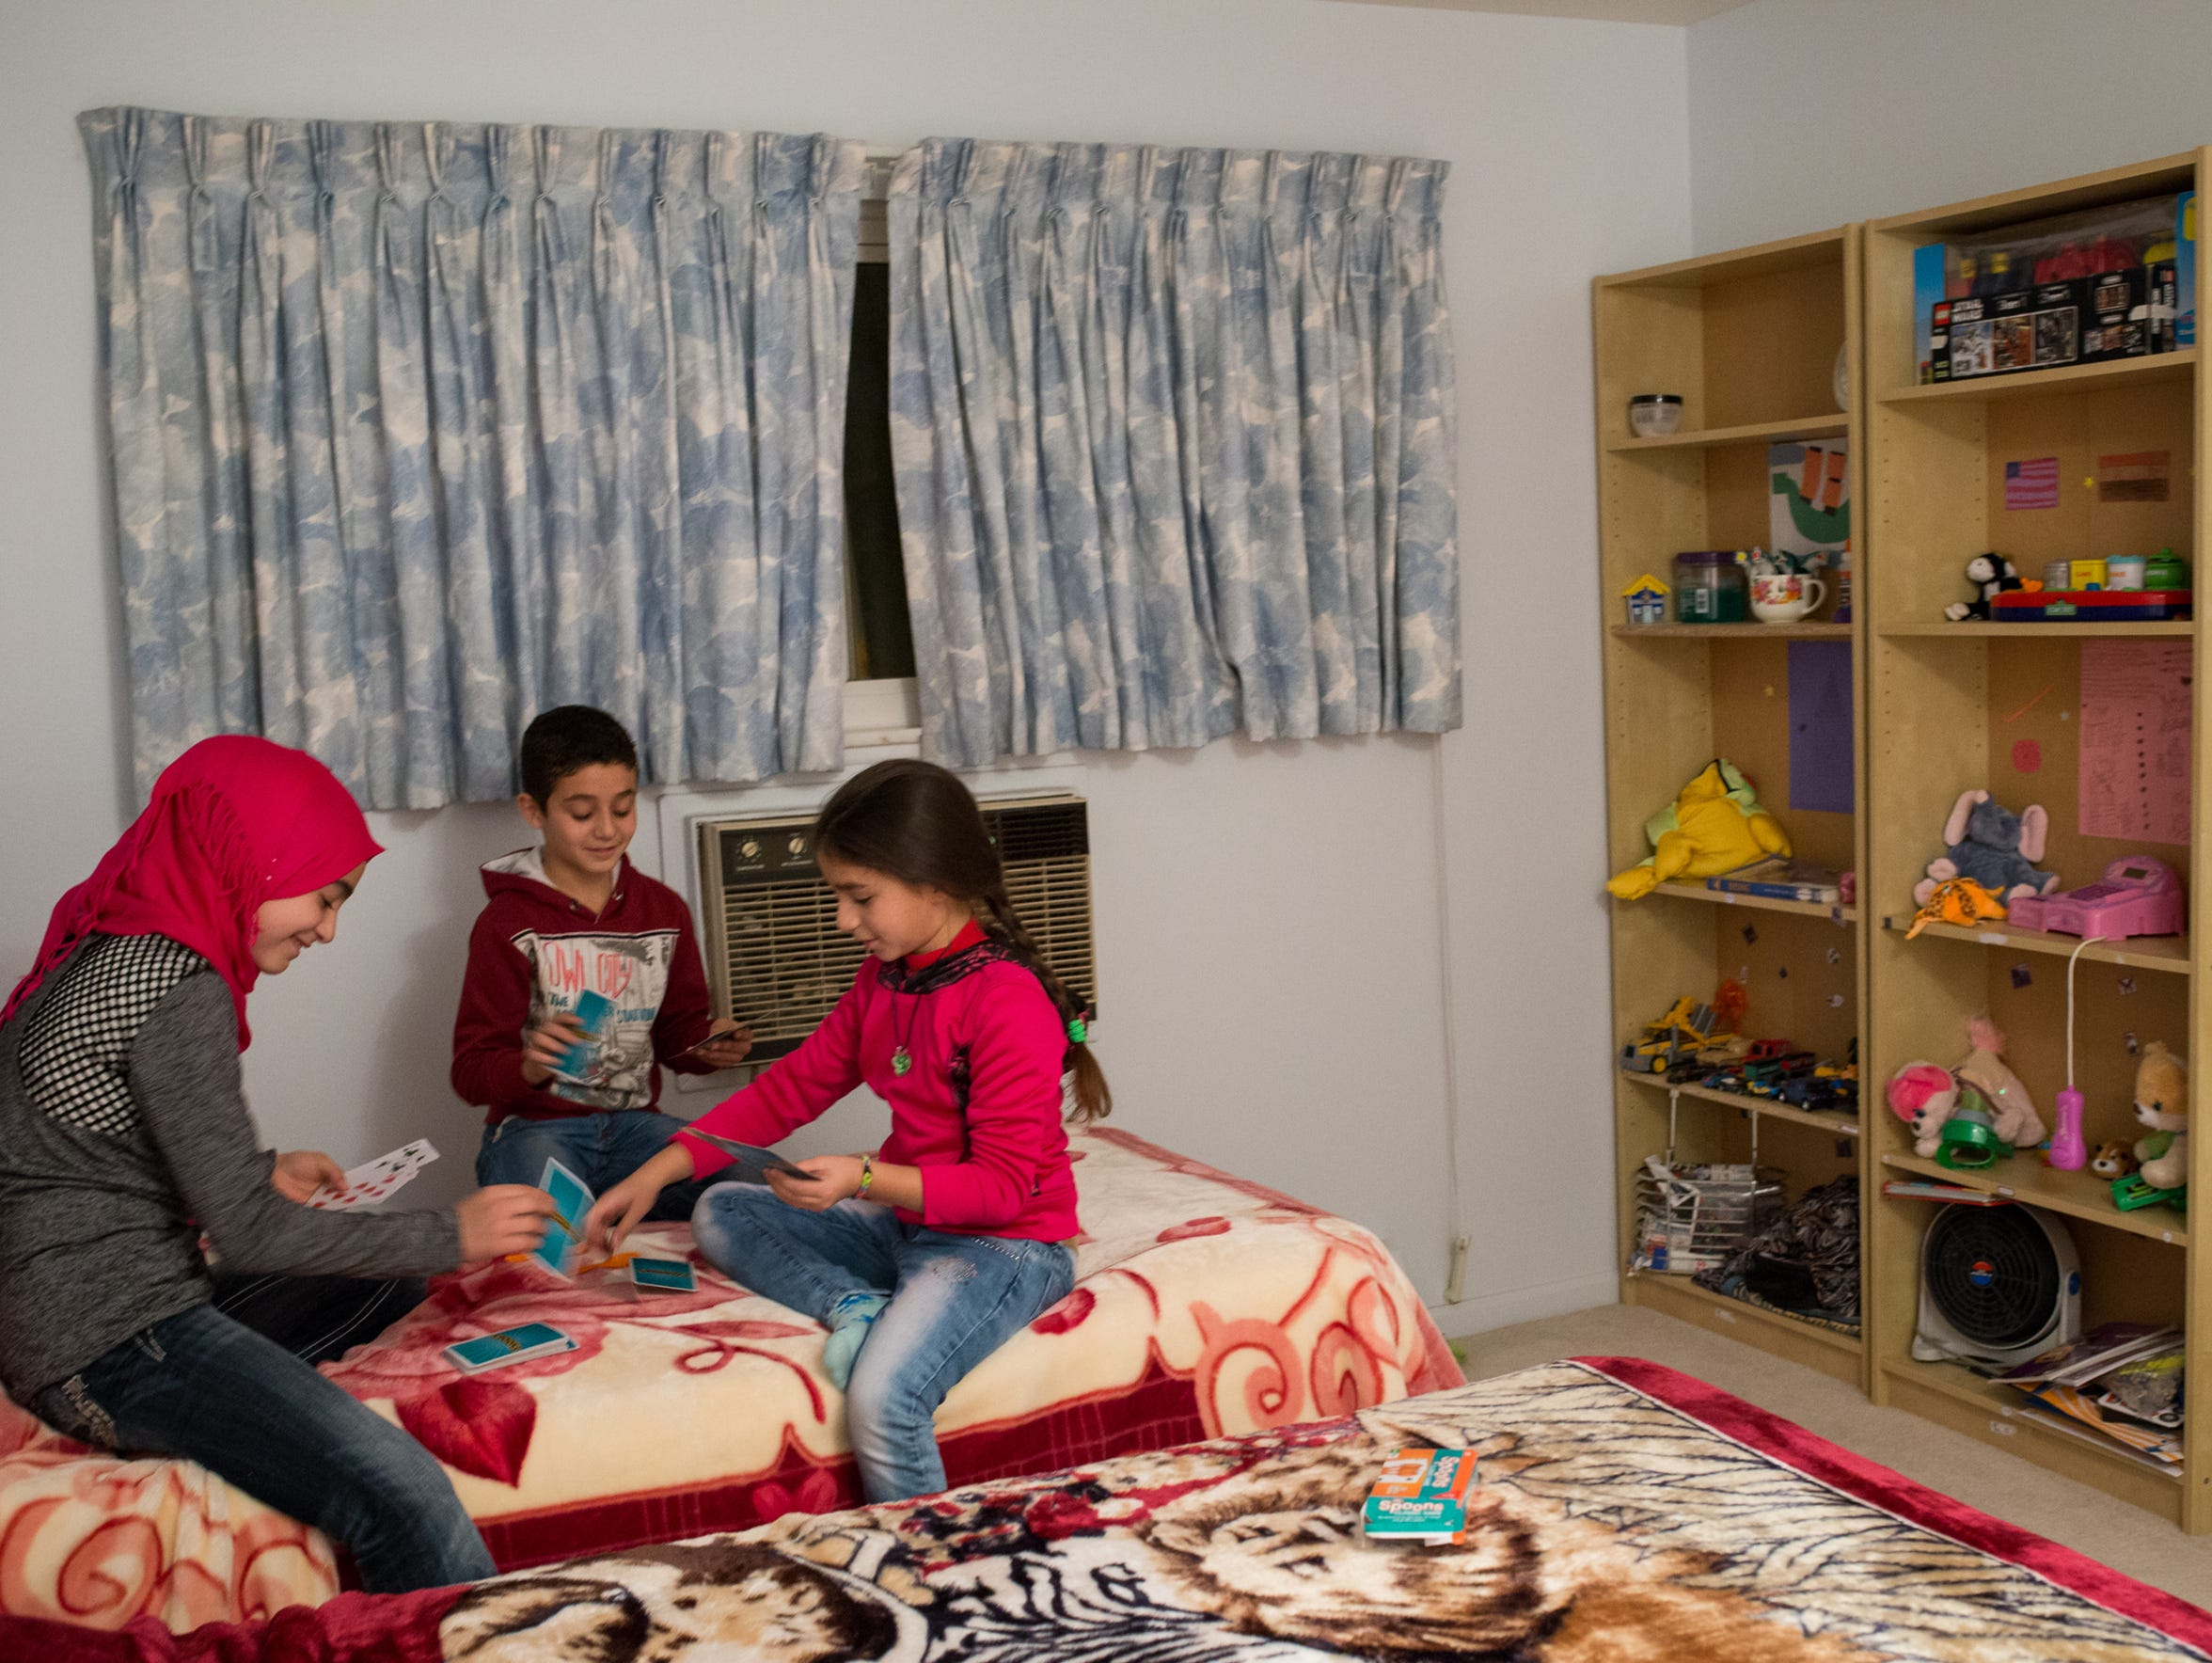 From left, Esraa Sharaf, 12, plays a card game with